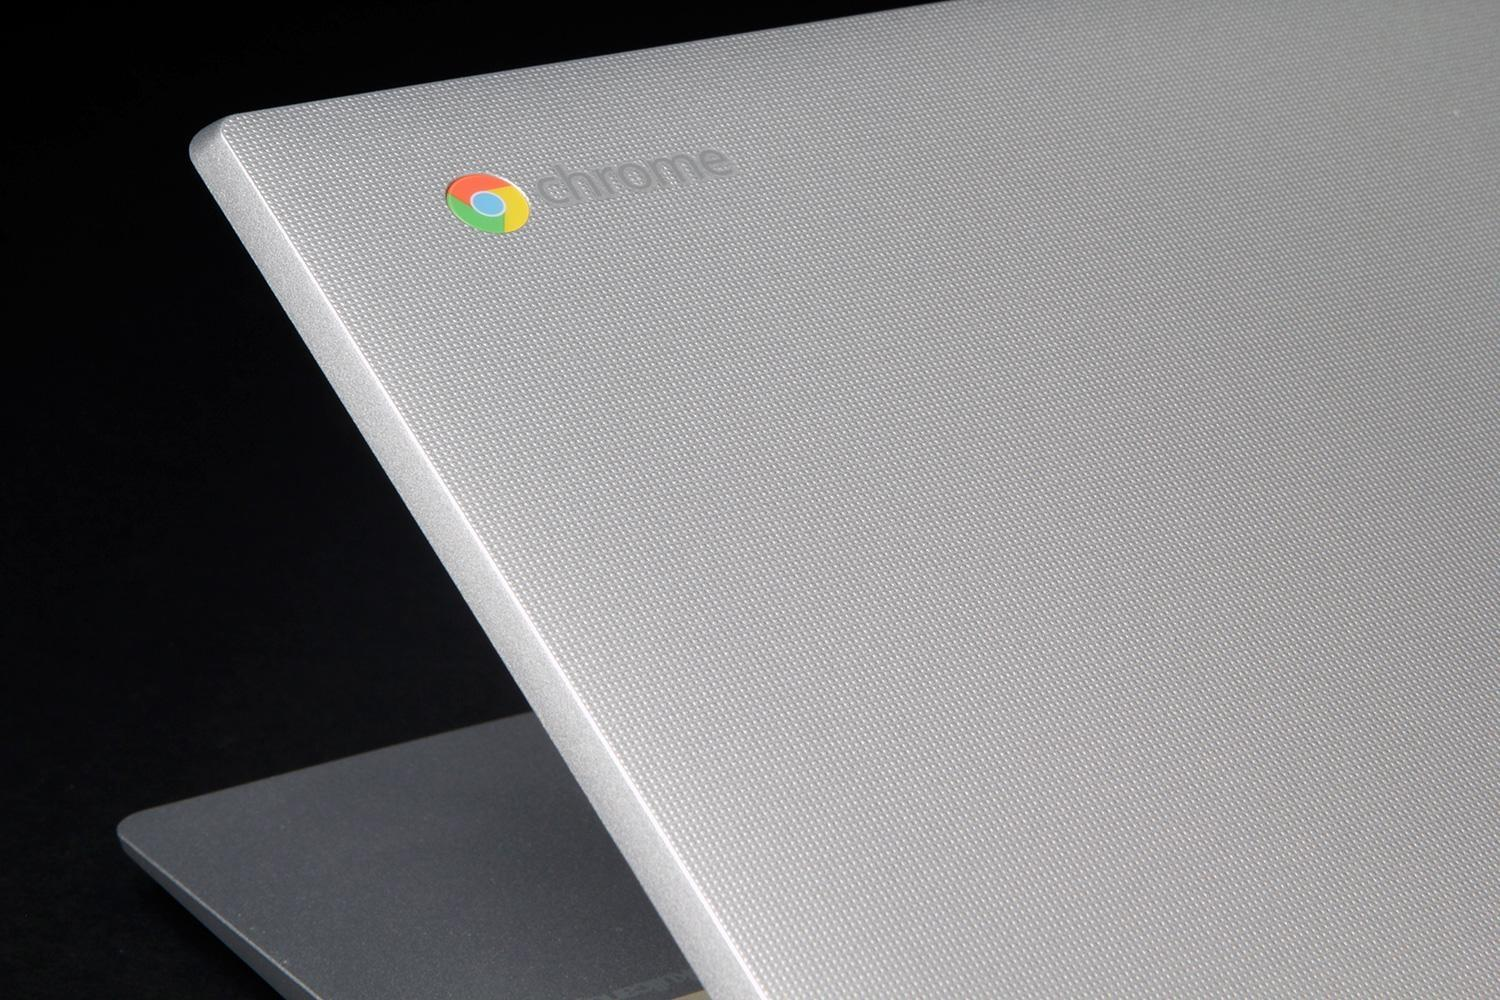 How to turn an old laptop into a Chromebook